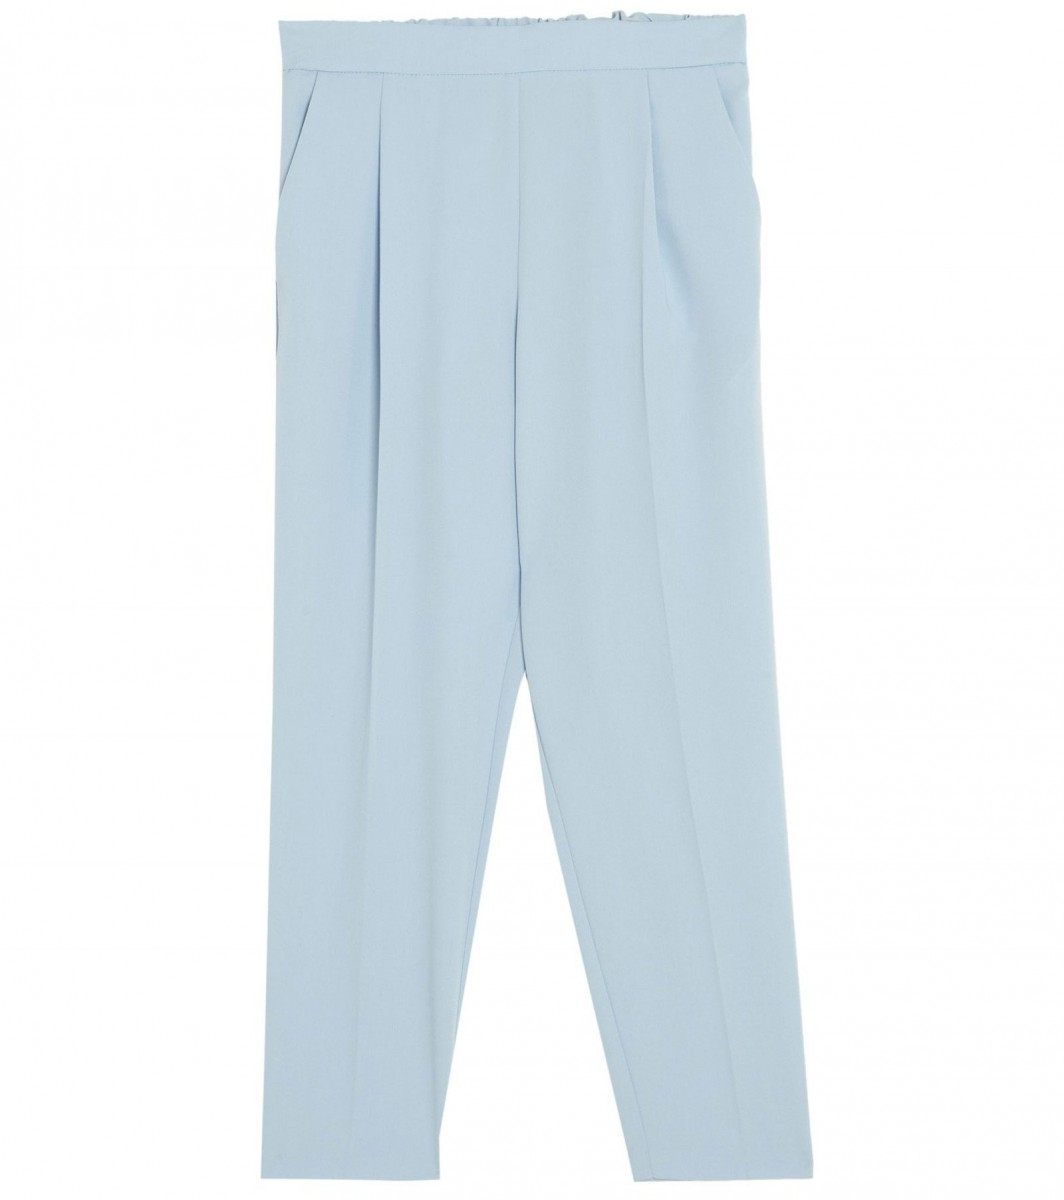 Pull&Bear basic jogging trousers in pastel blue, for 17,99 euros.